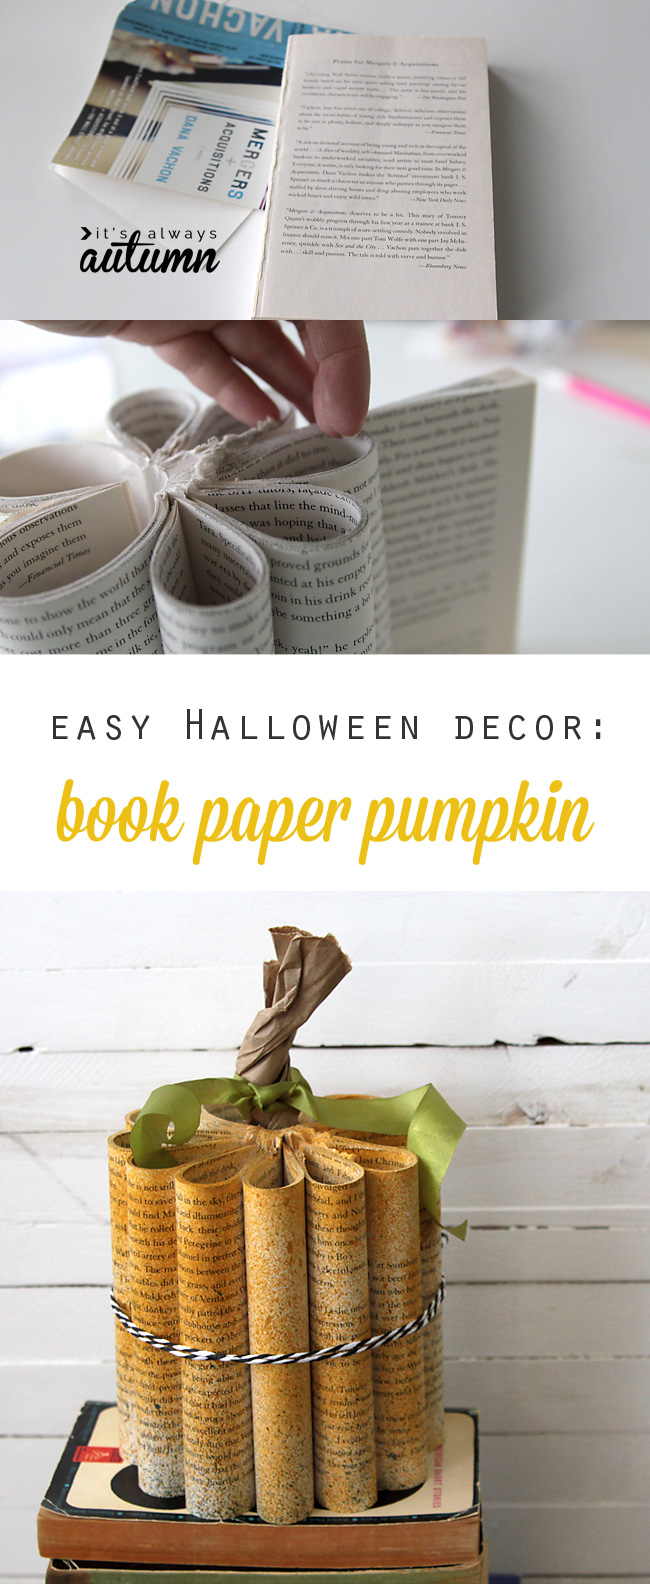 Fun new take on a book paper pumpkin! Easy DIY Halloween decoration.